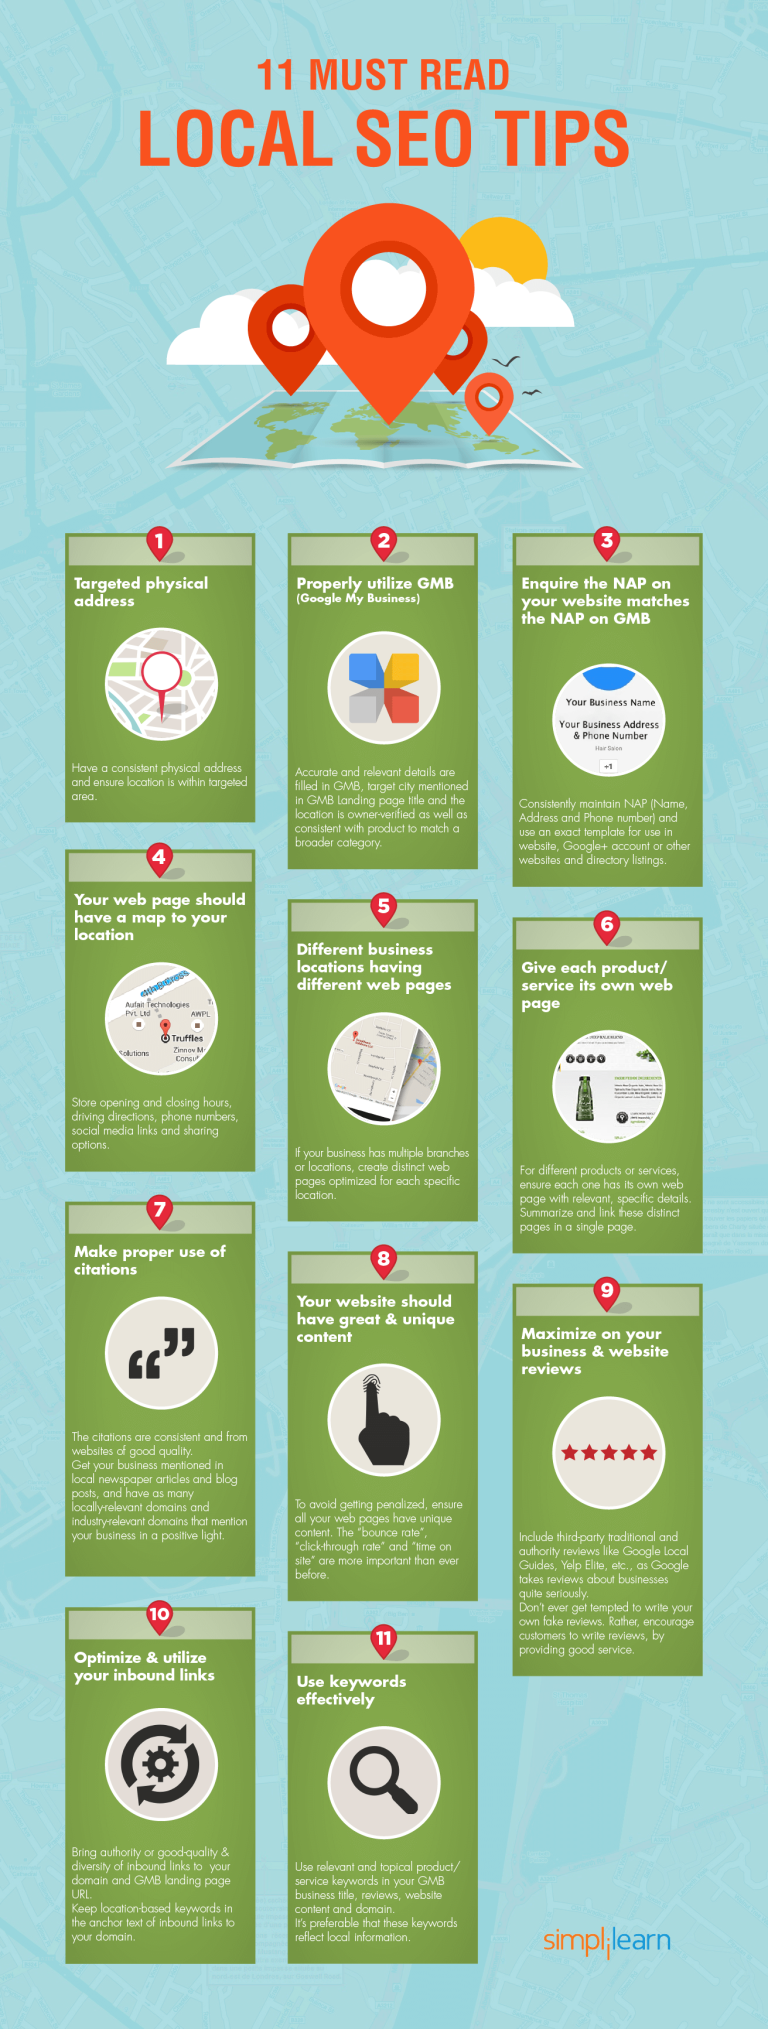 Local-seo-tips-infographic